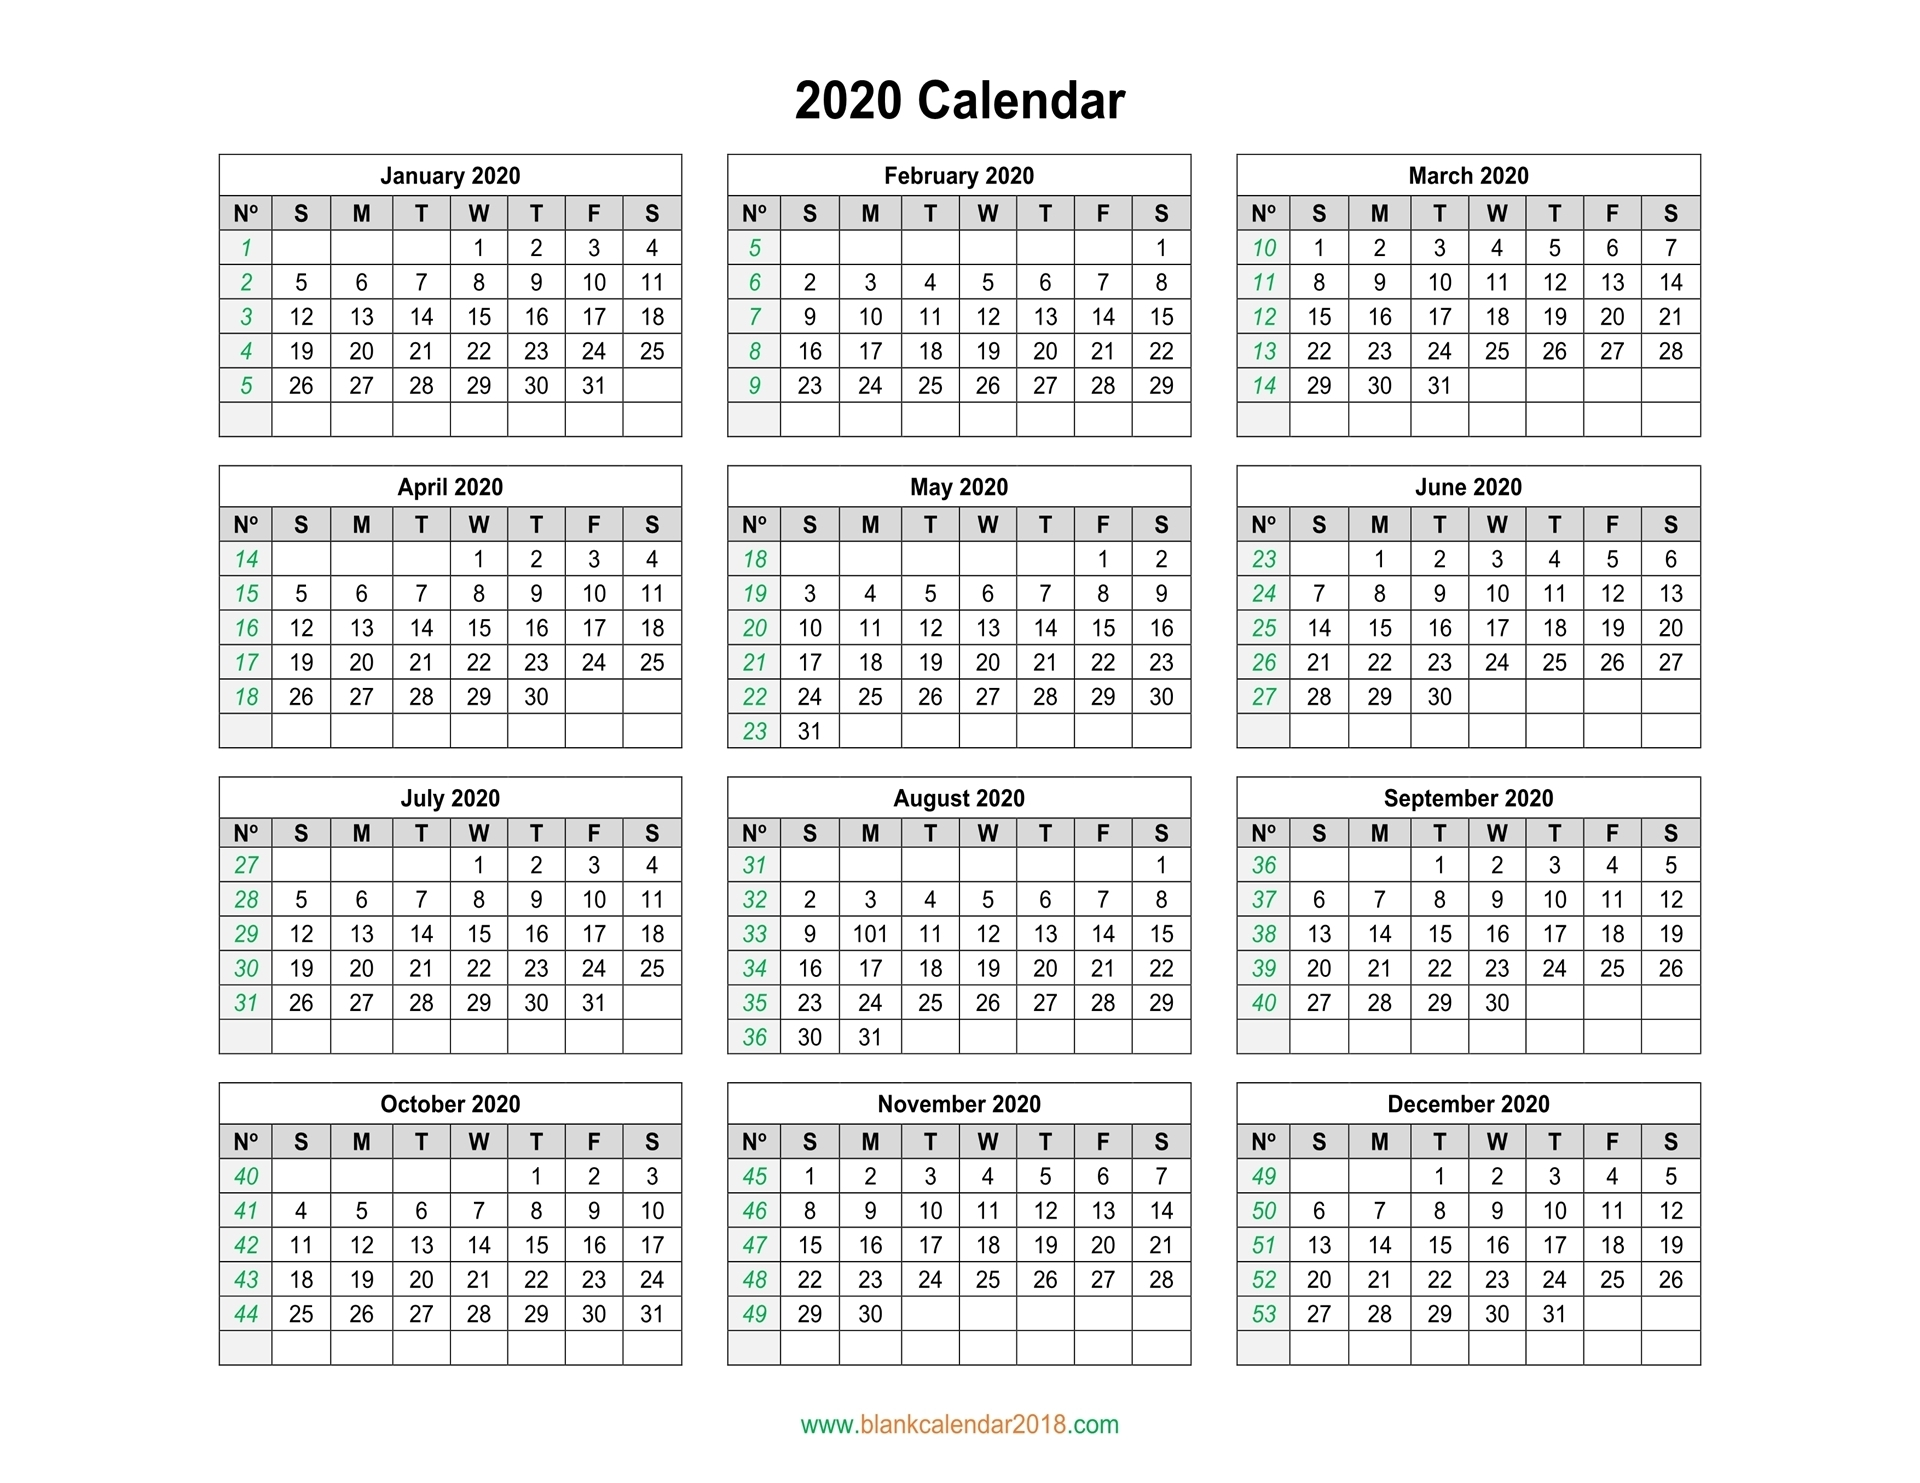 Blank Calendar 2020 intended for Blank Calander 2020 Fill In